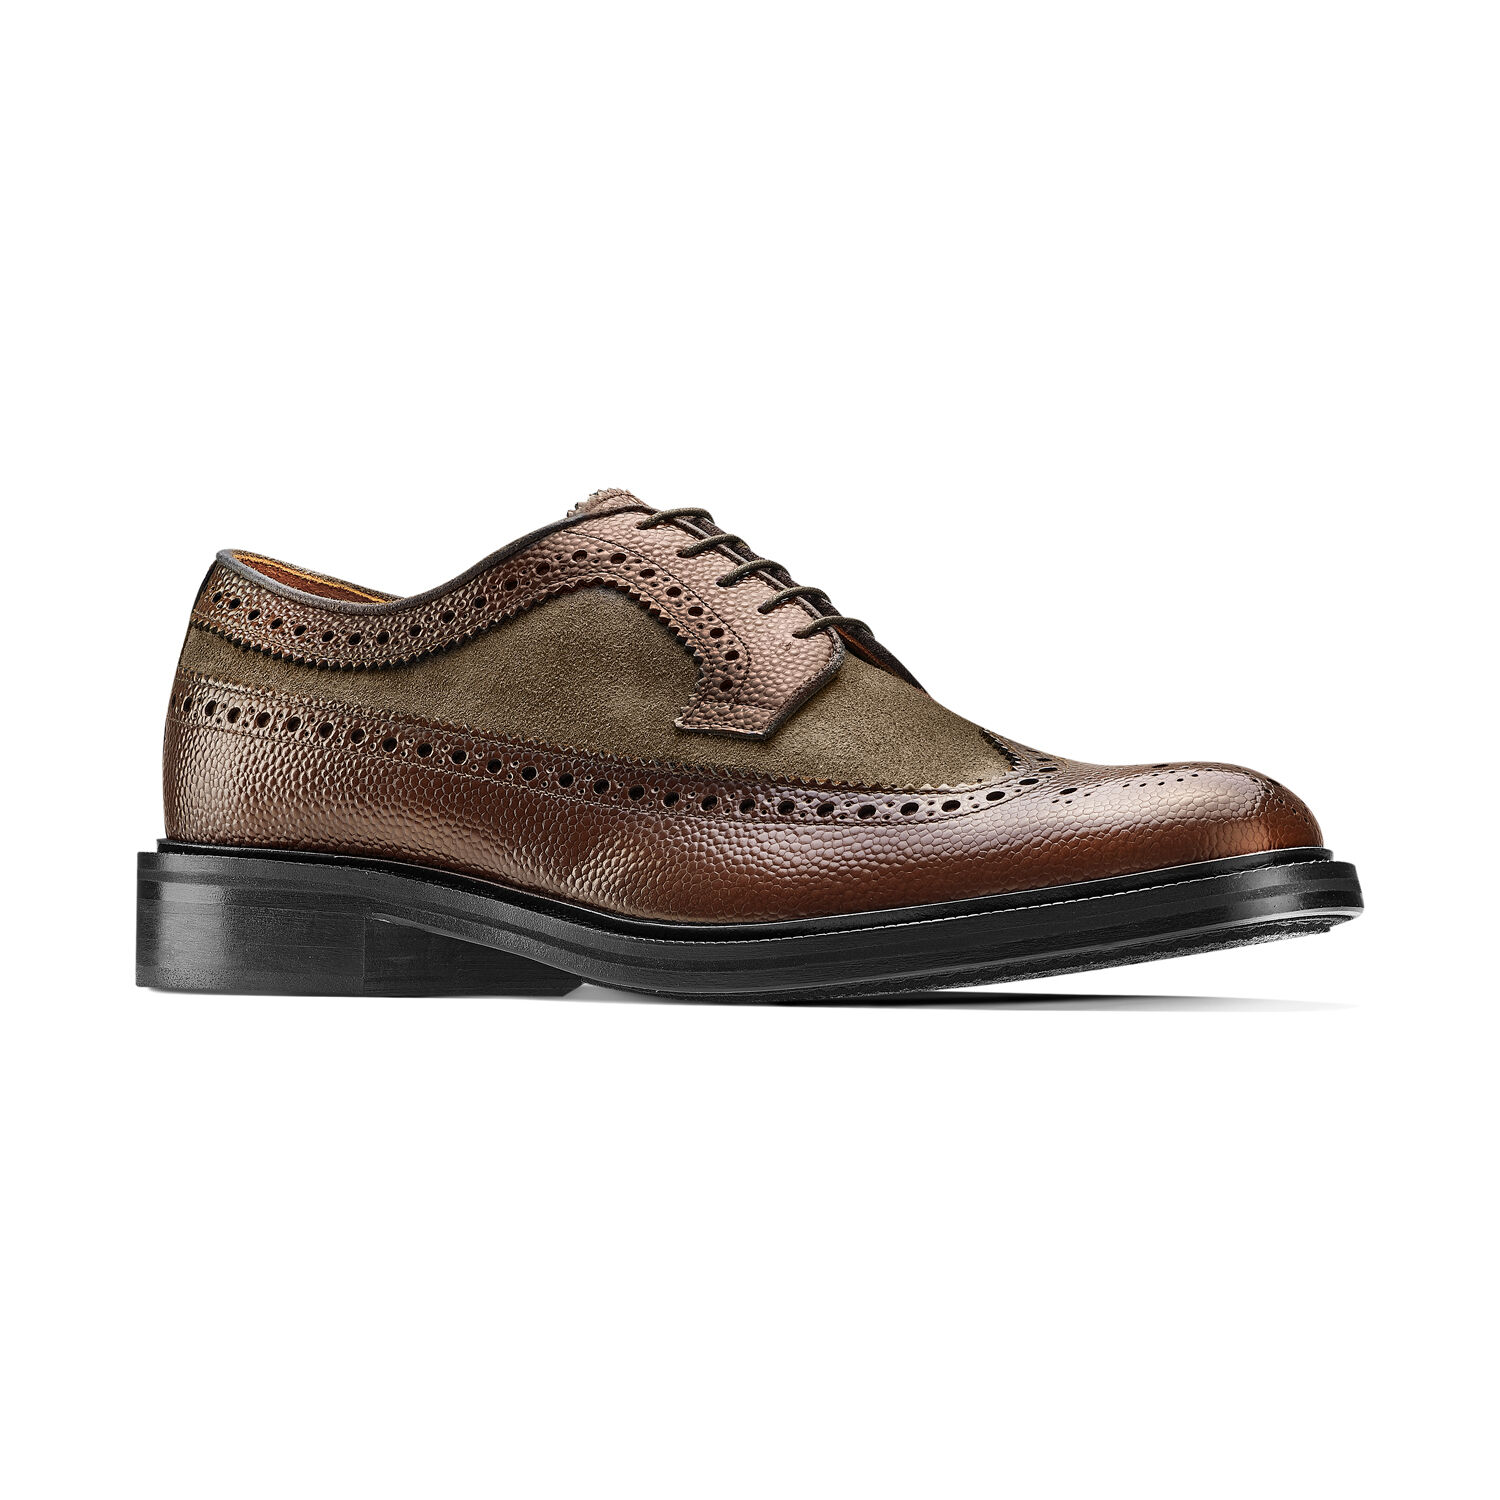 Bata the Shoemaker stringate uomo